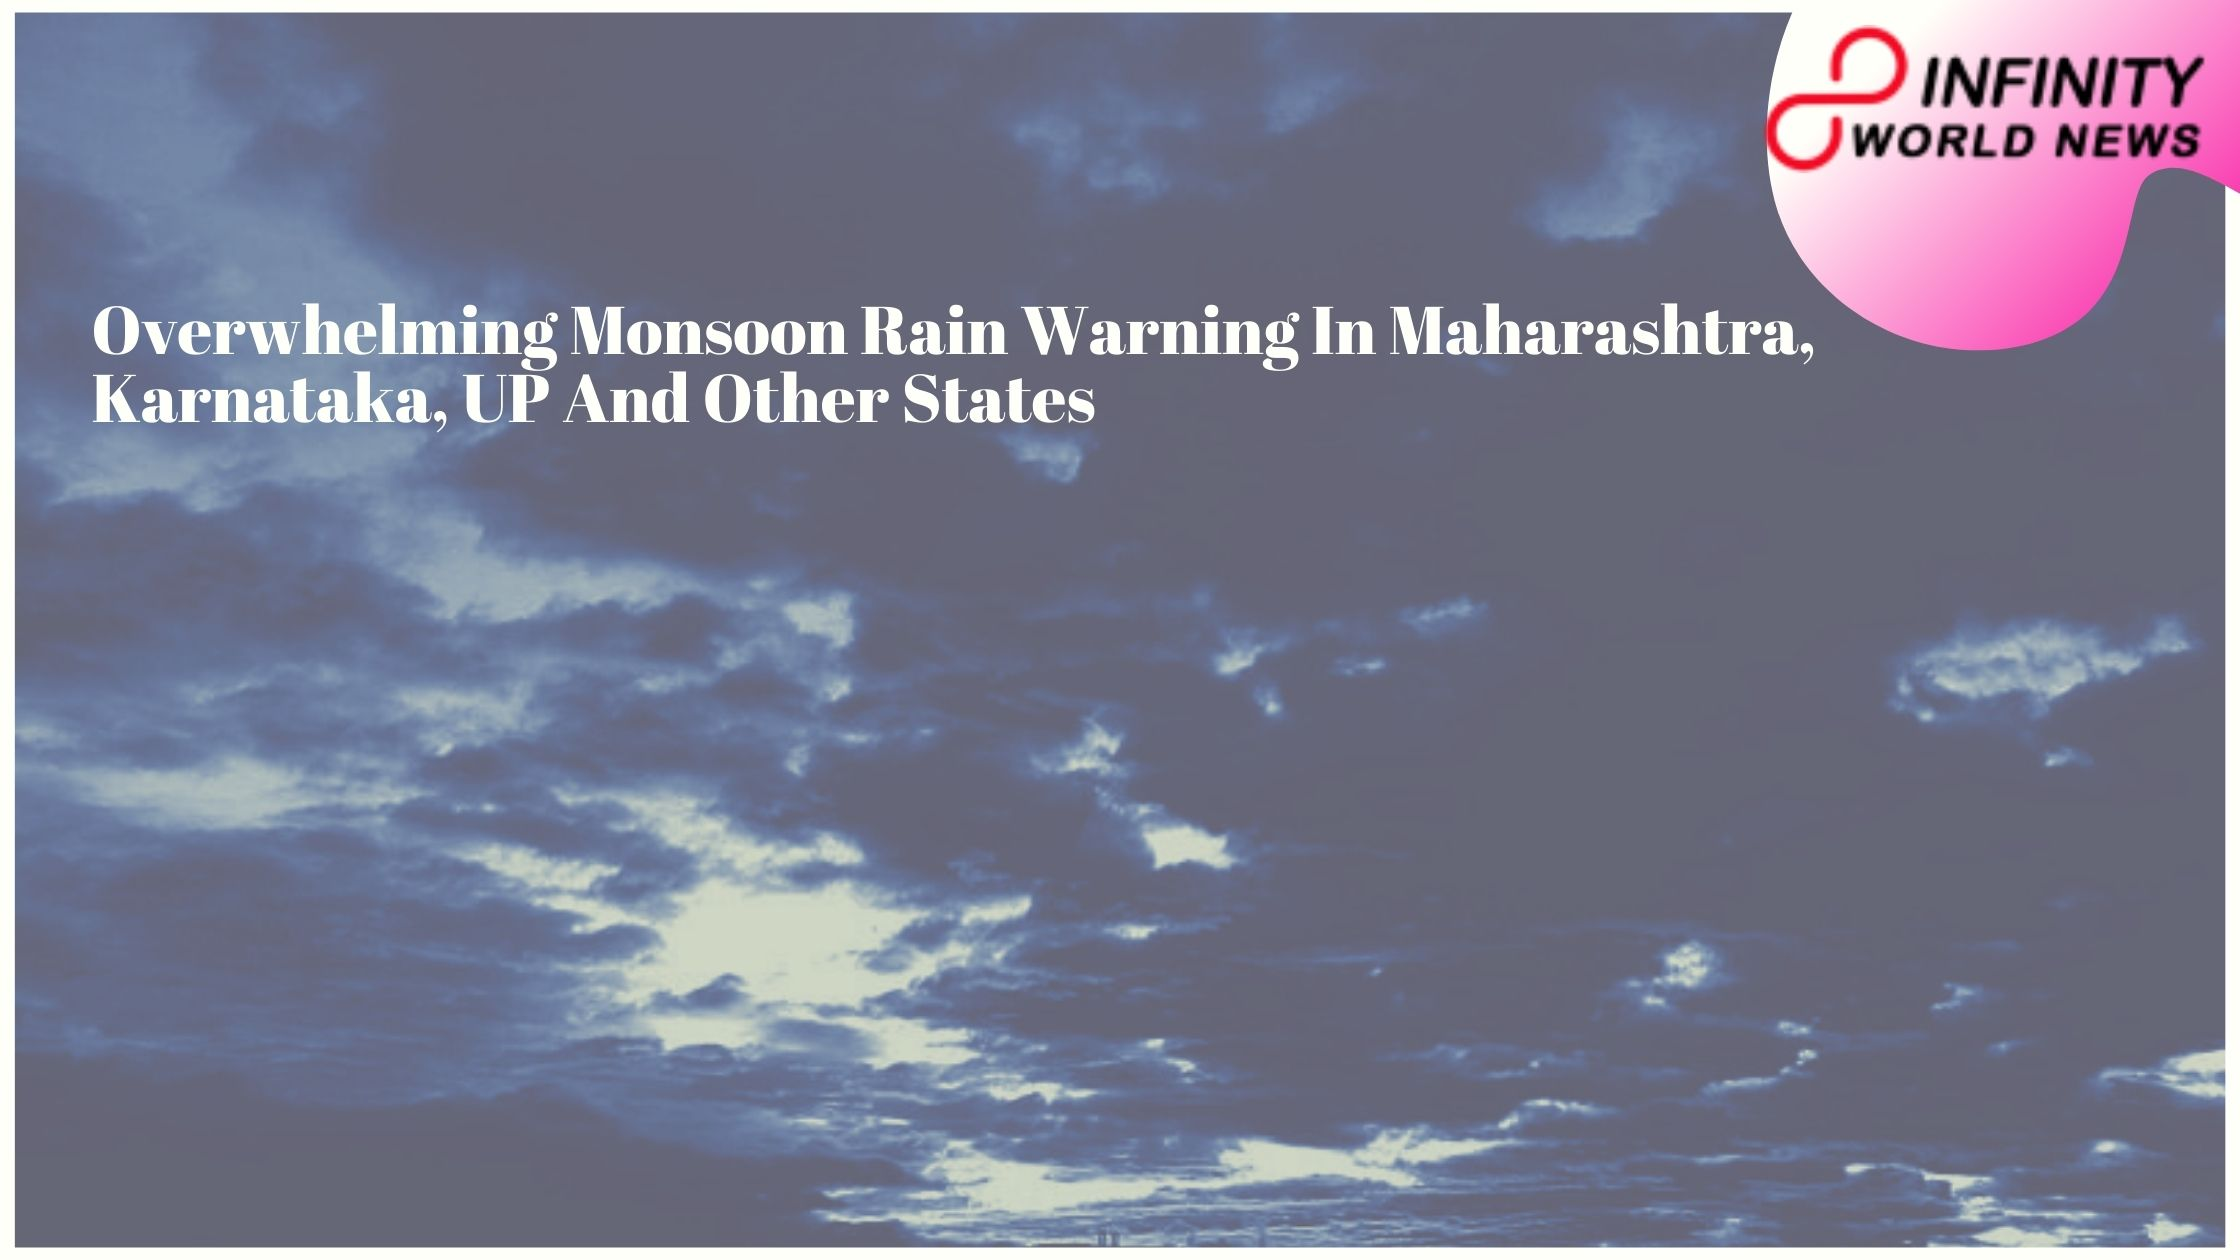 Overwhelming Monsoon Rain Warning In Maharashtra, Karnataka, UP And Other States